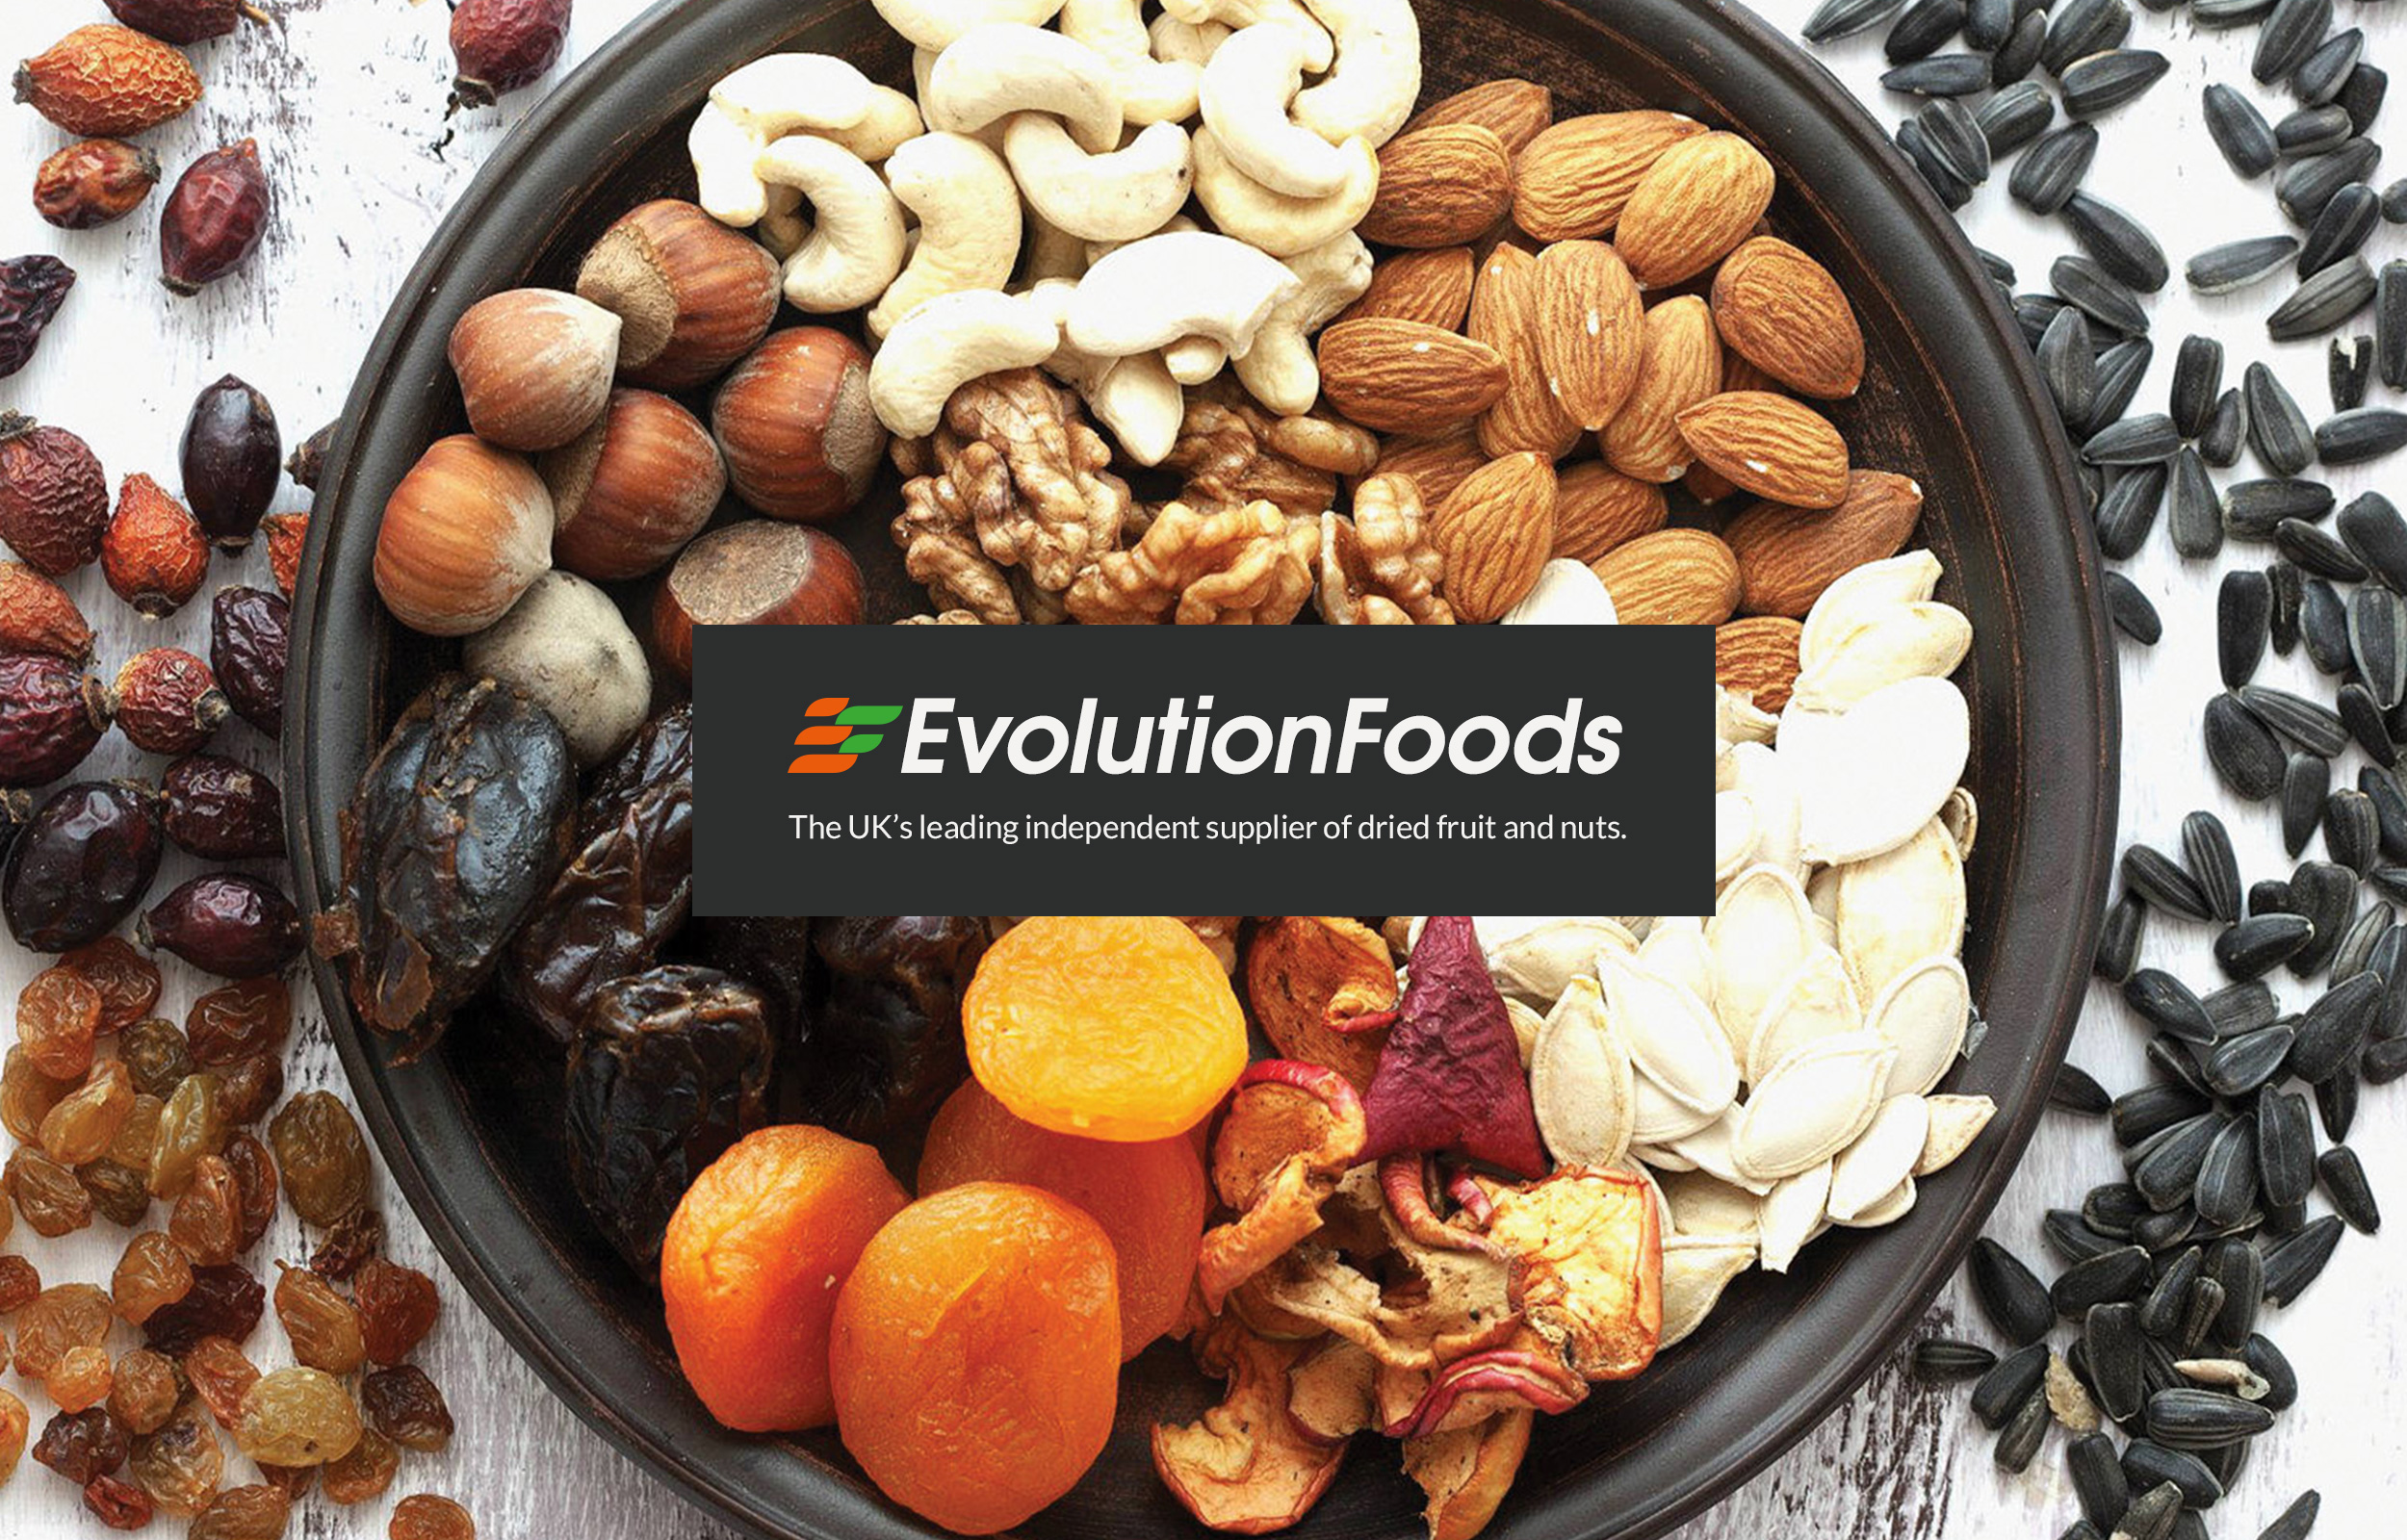 Evolution Foods